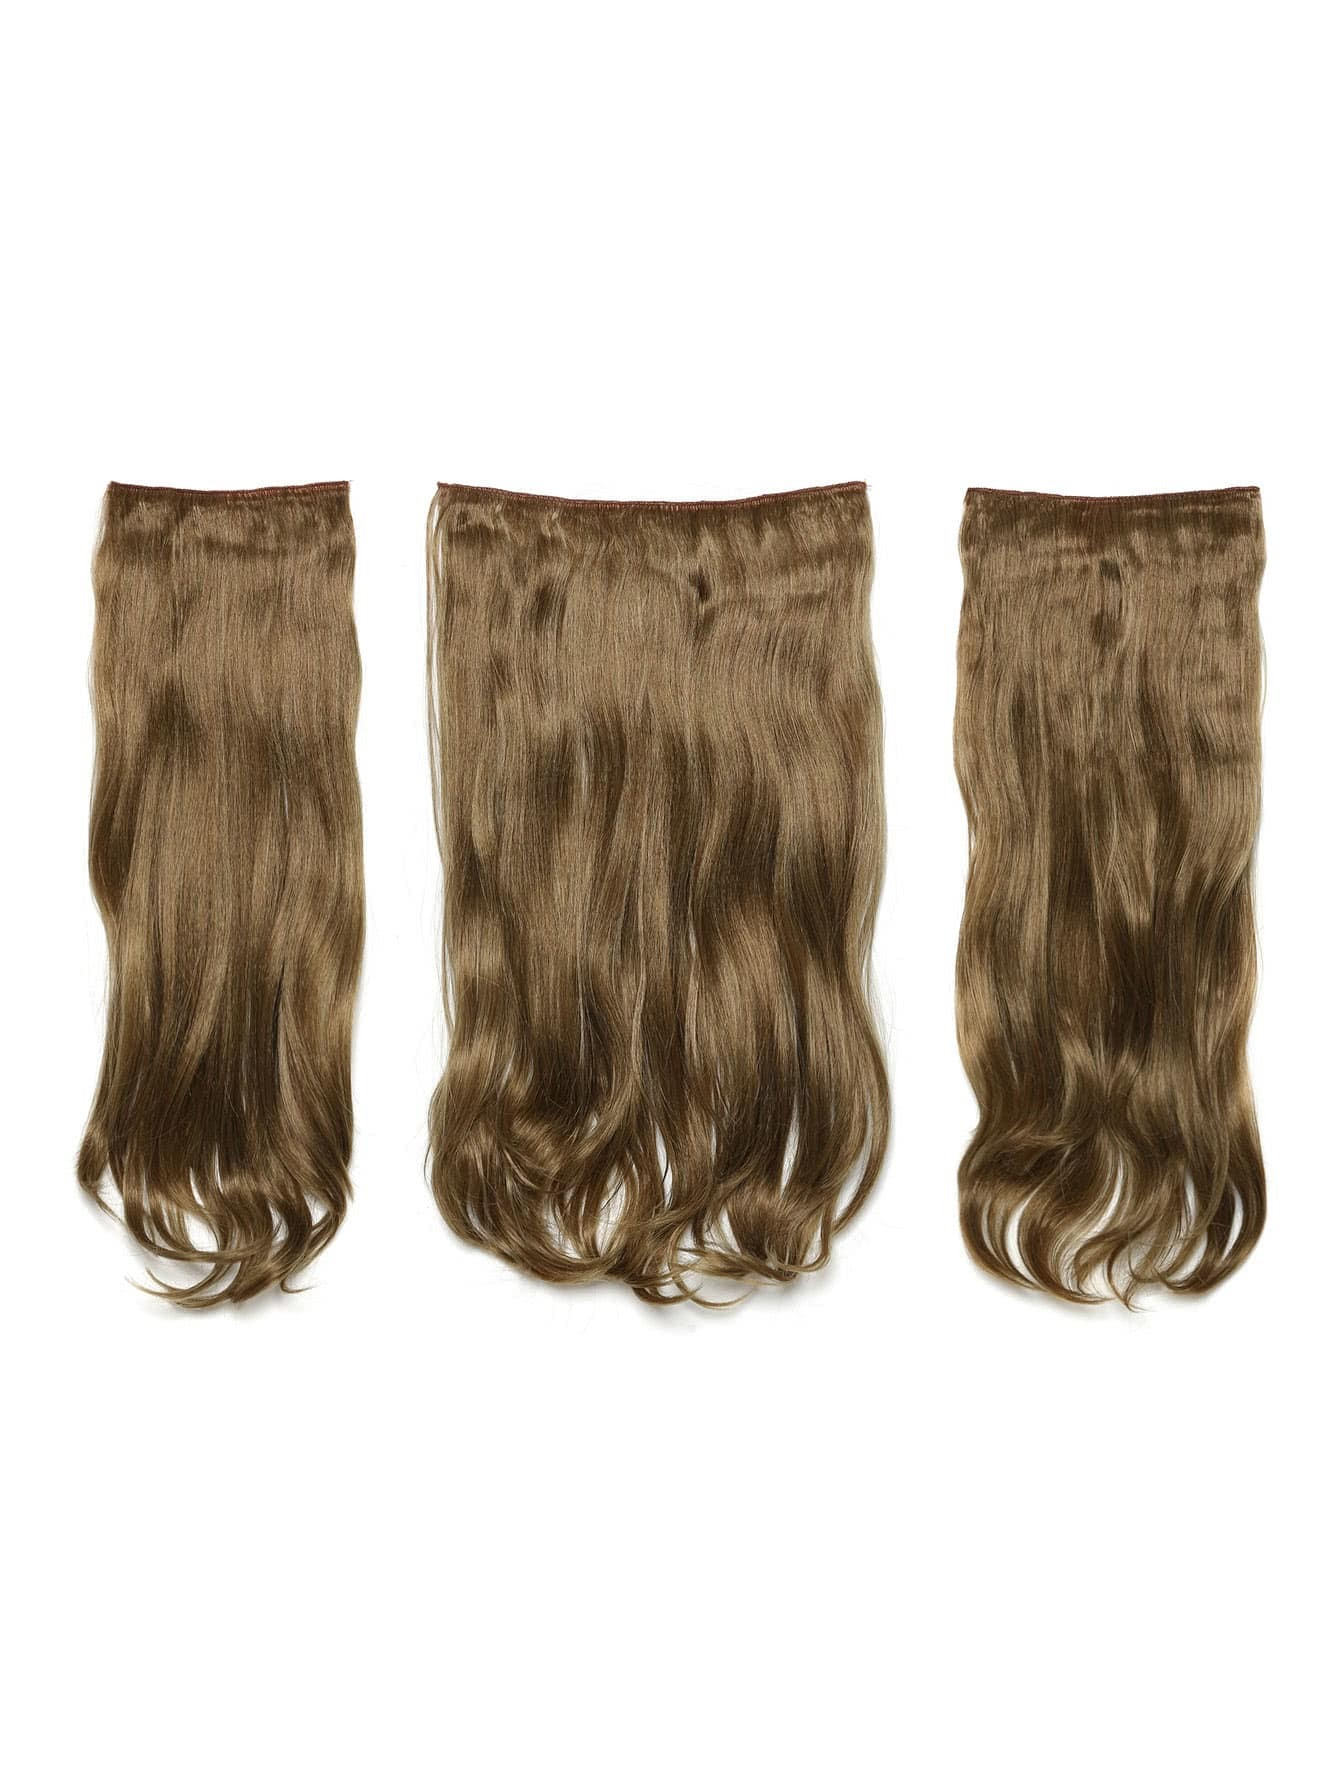 Harvest Blonde Clip In Soft Wave Hair Extension 3pcs